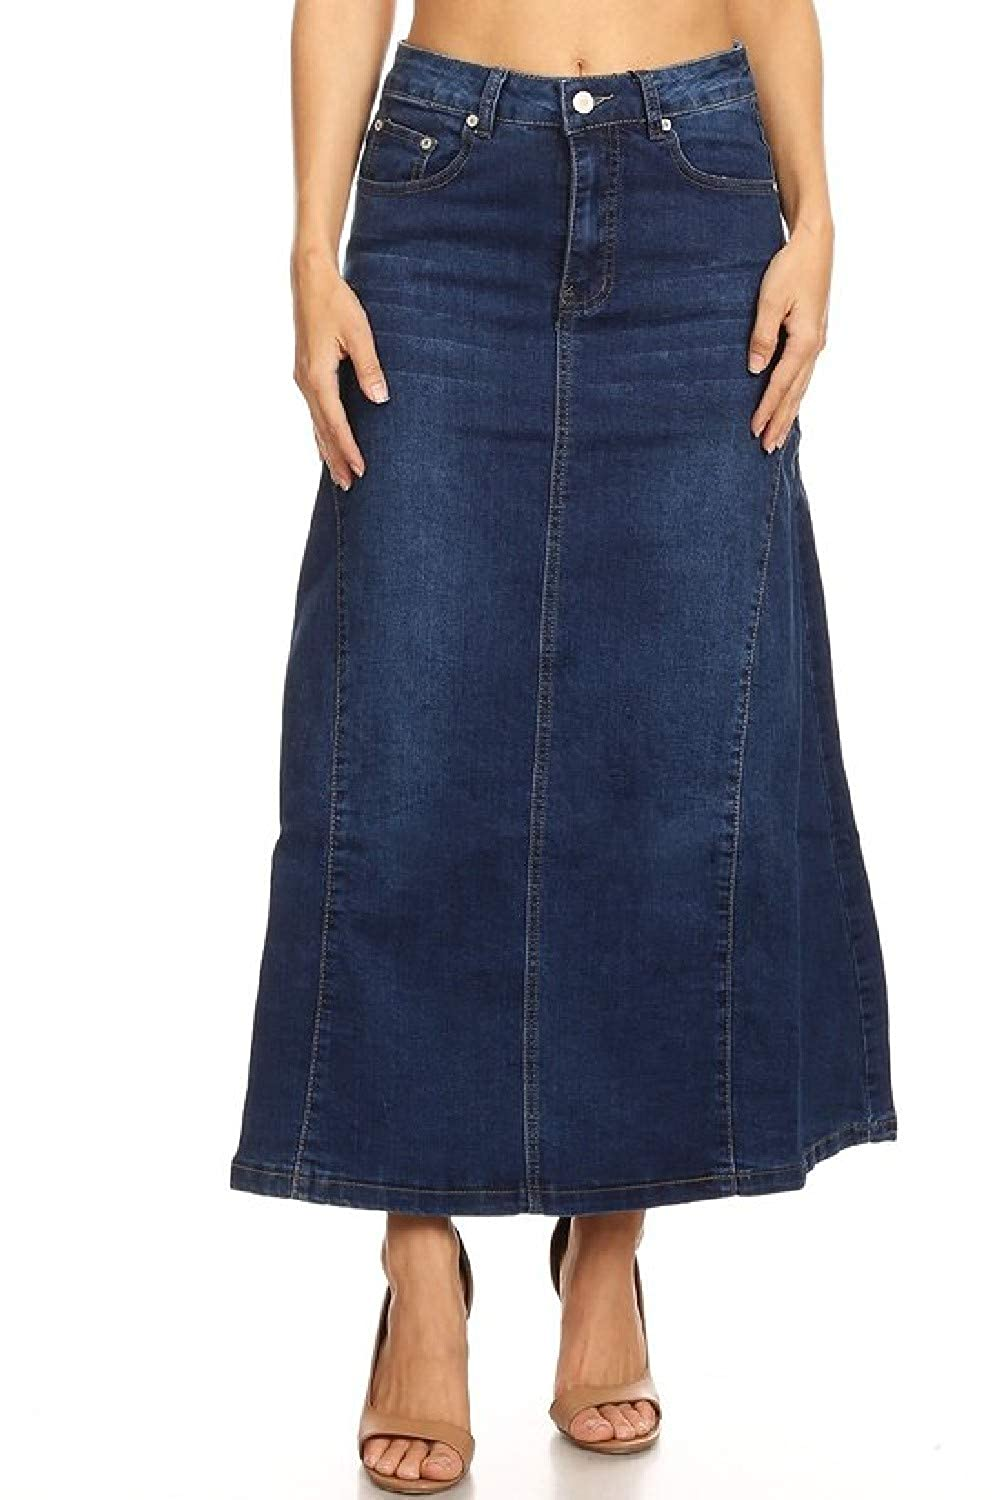 b989800a36e Women s Juniors Mid Rise A-Line Long Jeans Maxi Denim Skirt at Amazon  Women s Clothing store